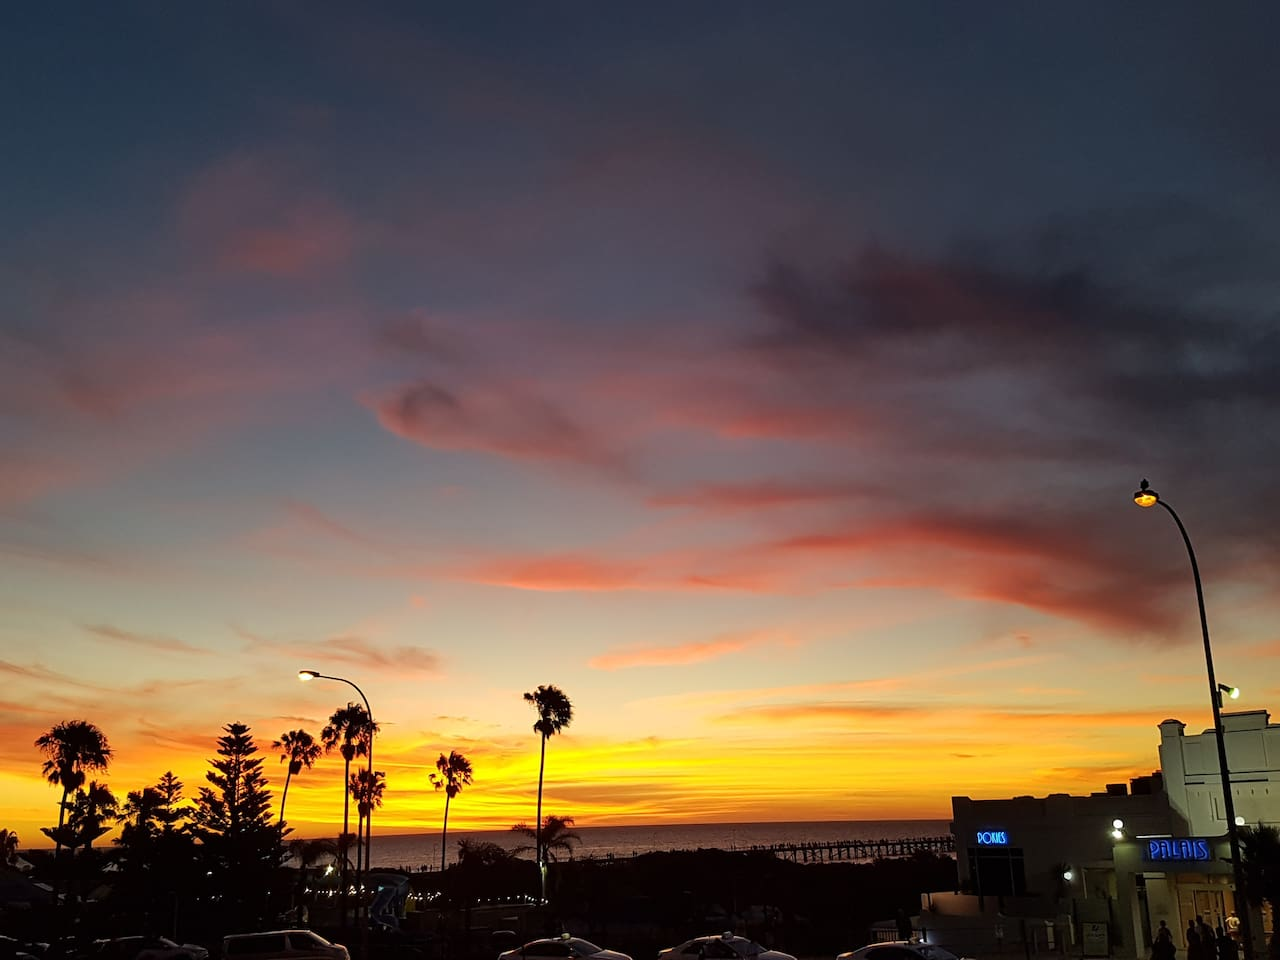 Sunsets & Blues from the Semaphore Worker's Club, about three minutes away via esplanade.